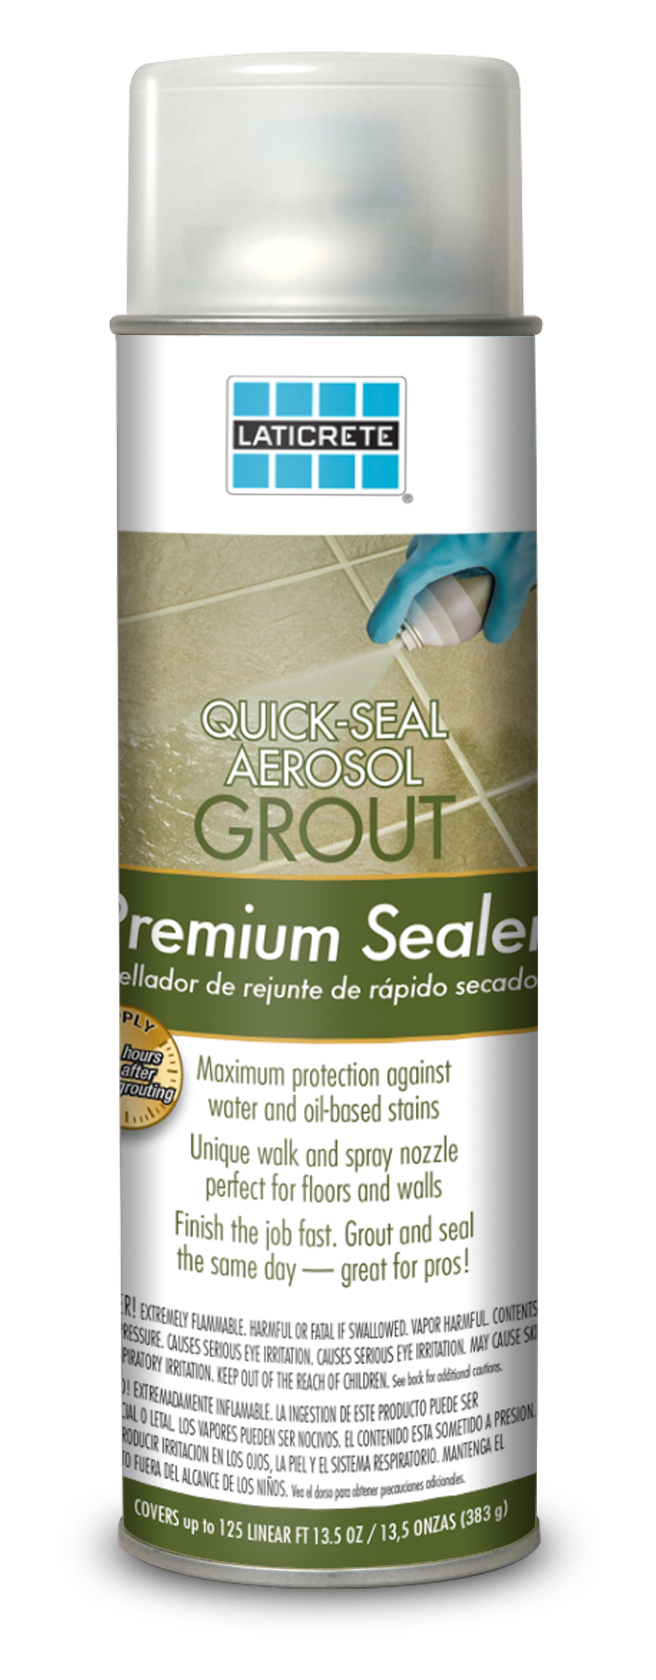 LATICRETE® Quick-Seal Aerosol Grout Sealer